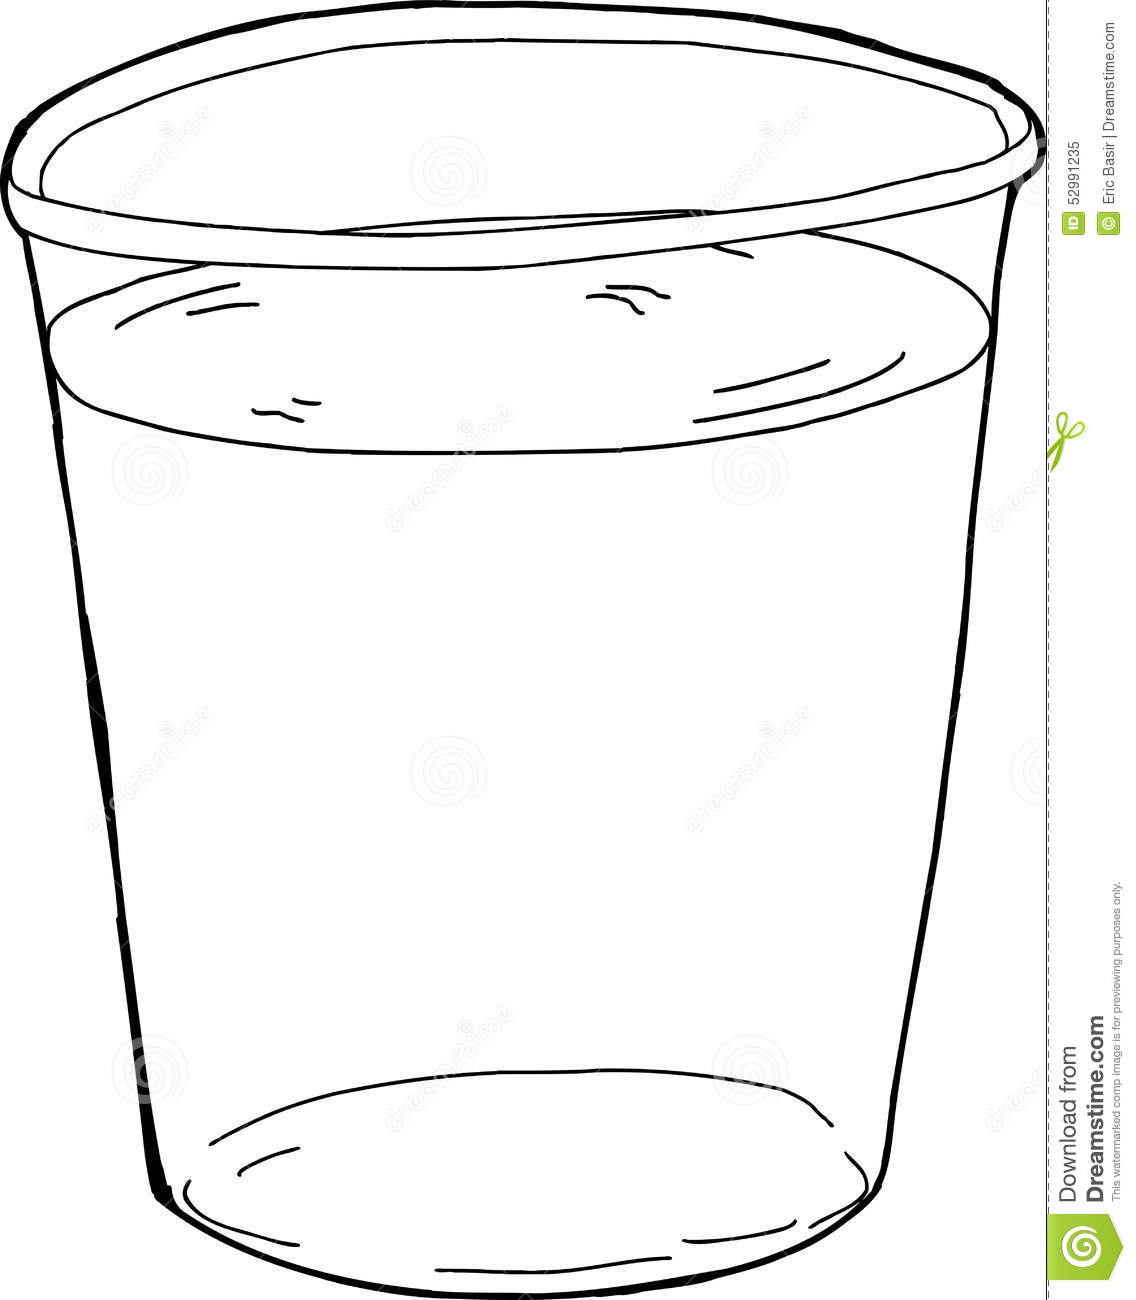 23460 Water free clipart.